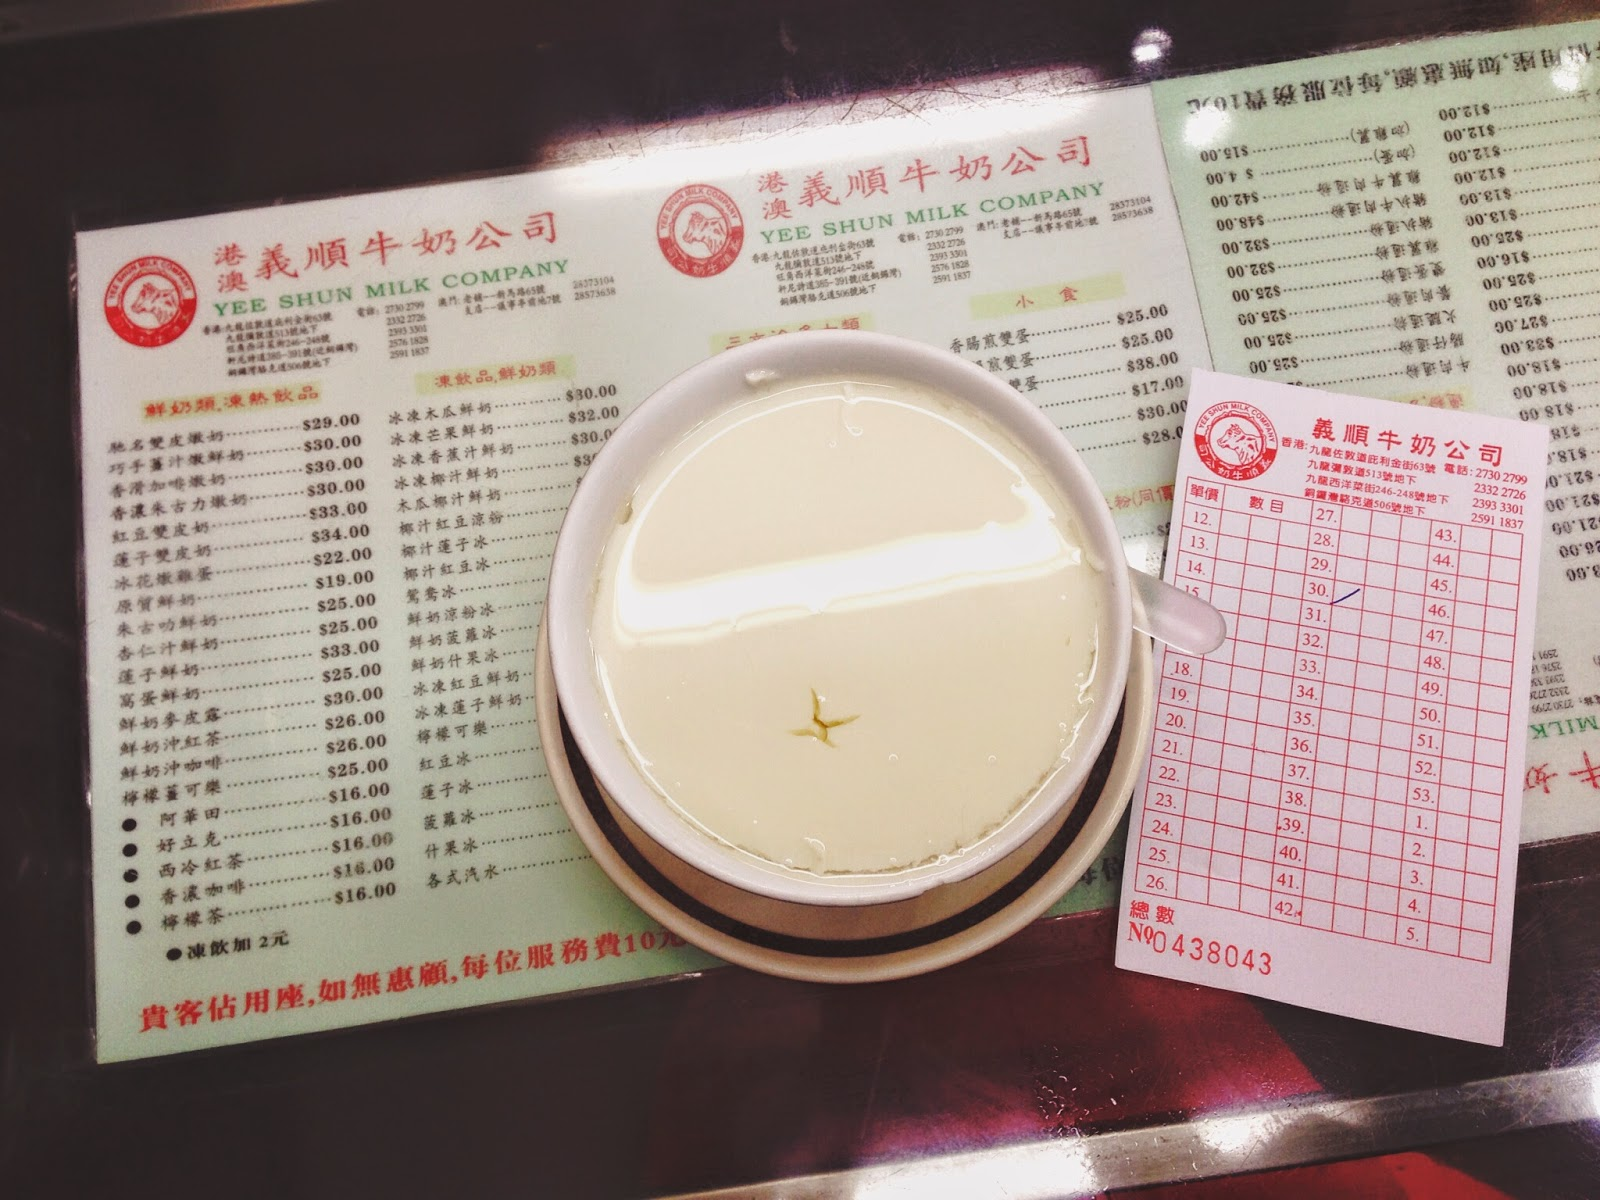 Yee Shun Milk Company Steam Milk Pudding